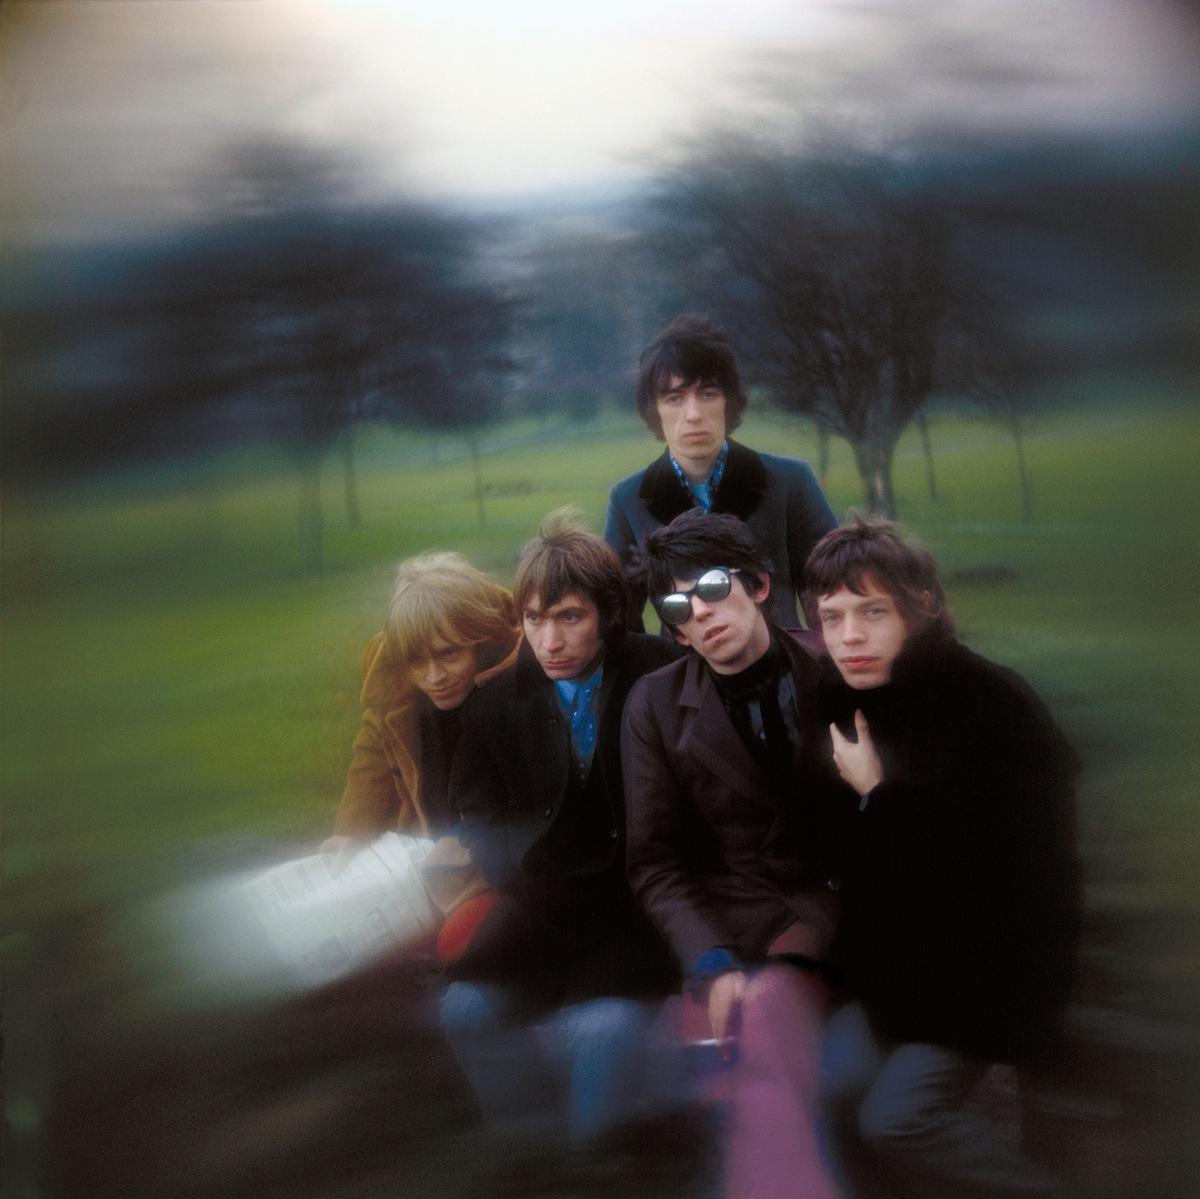 The Rolling Stones shot (Credit: Gered Mankowitz)